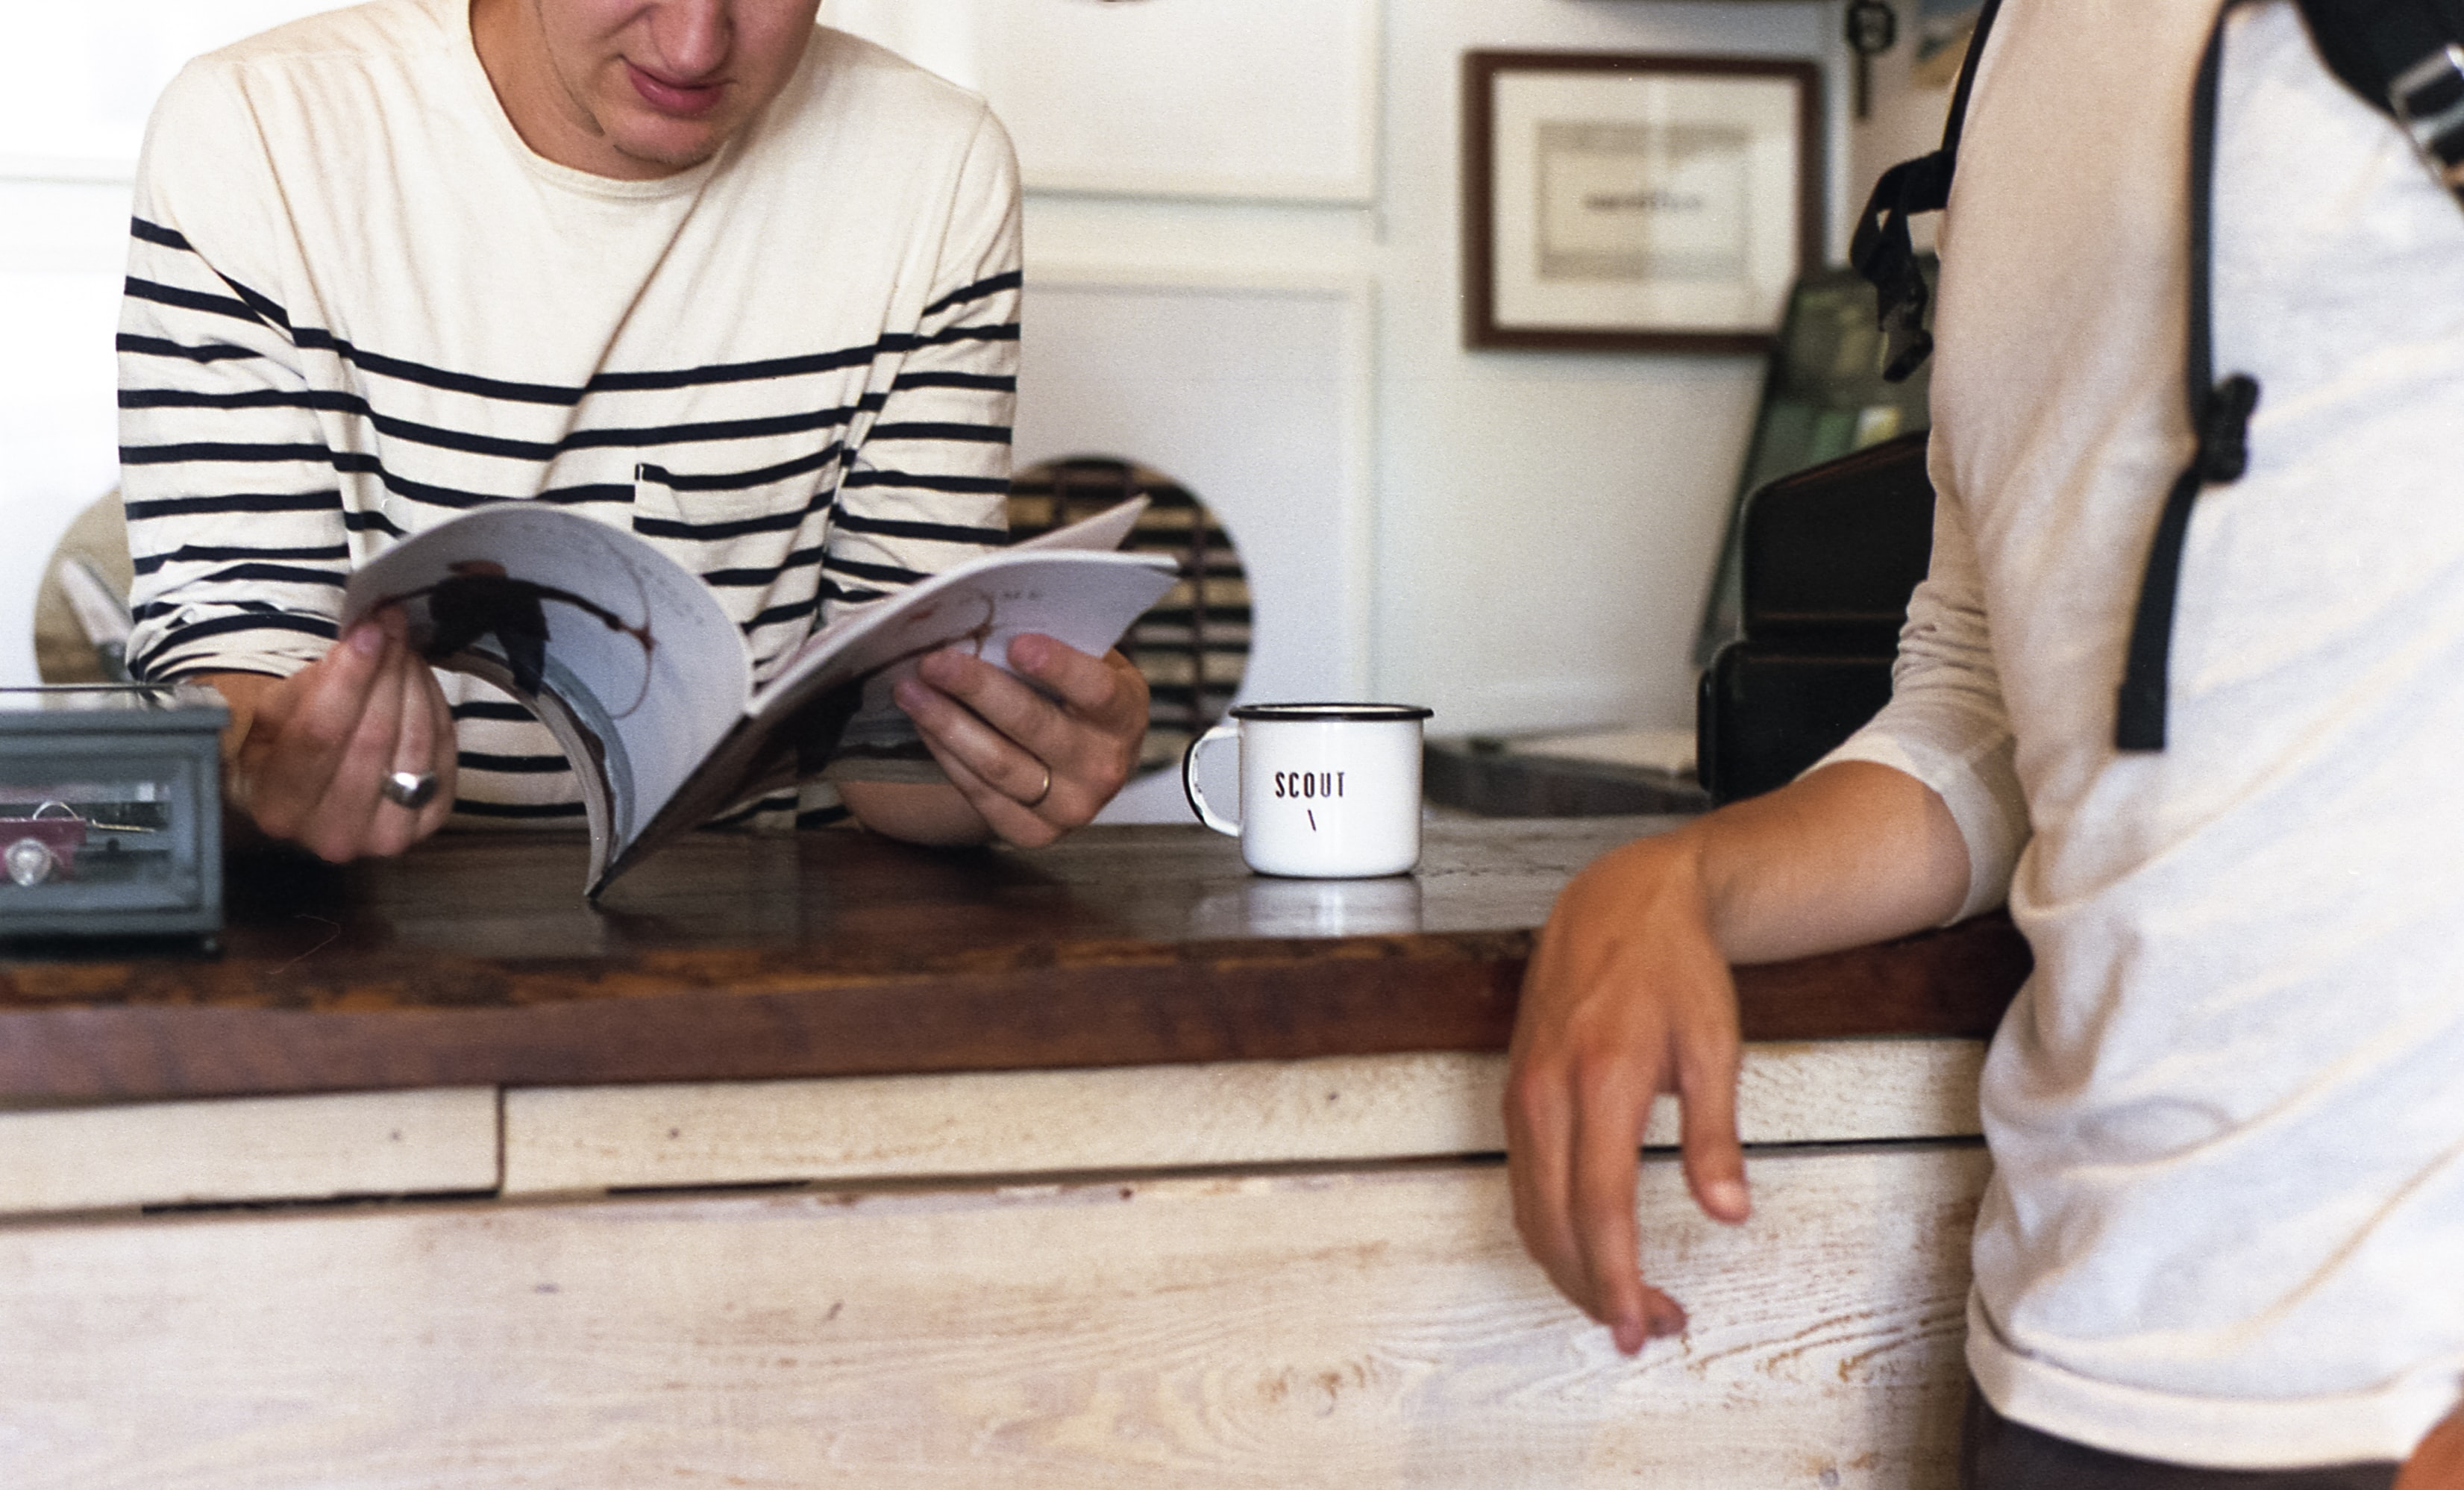 Two people standing near a counter with one of them reading a book